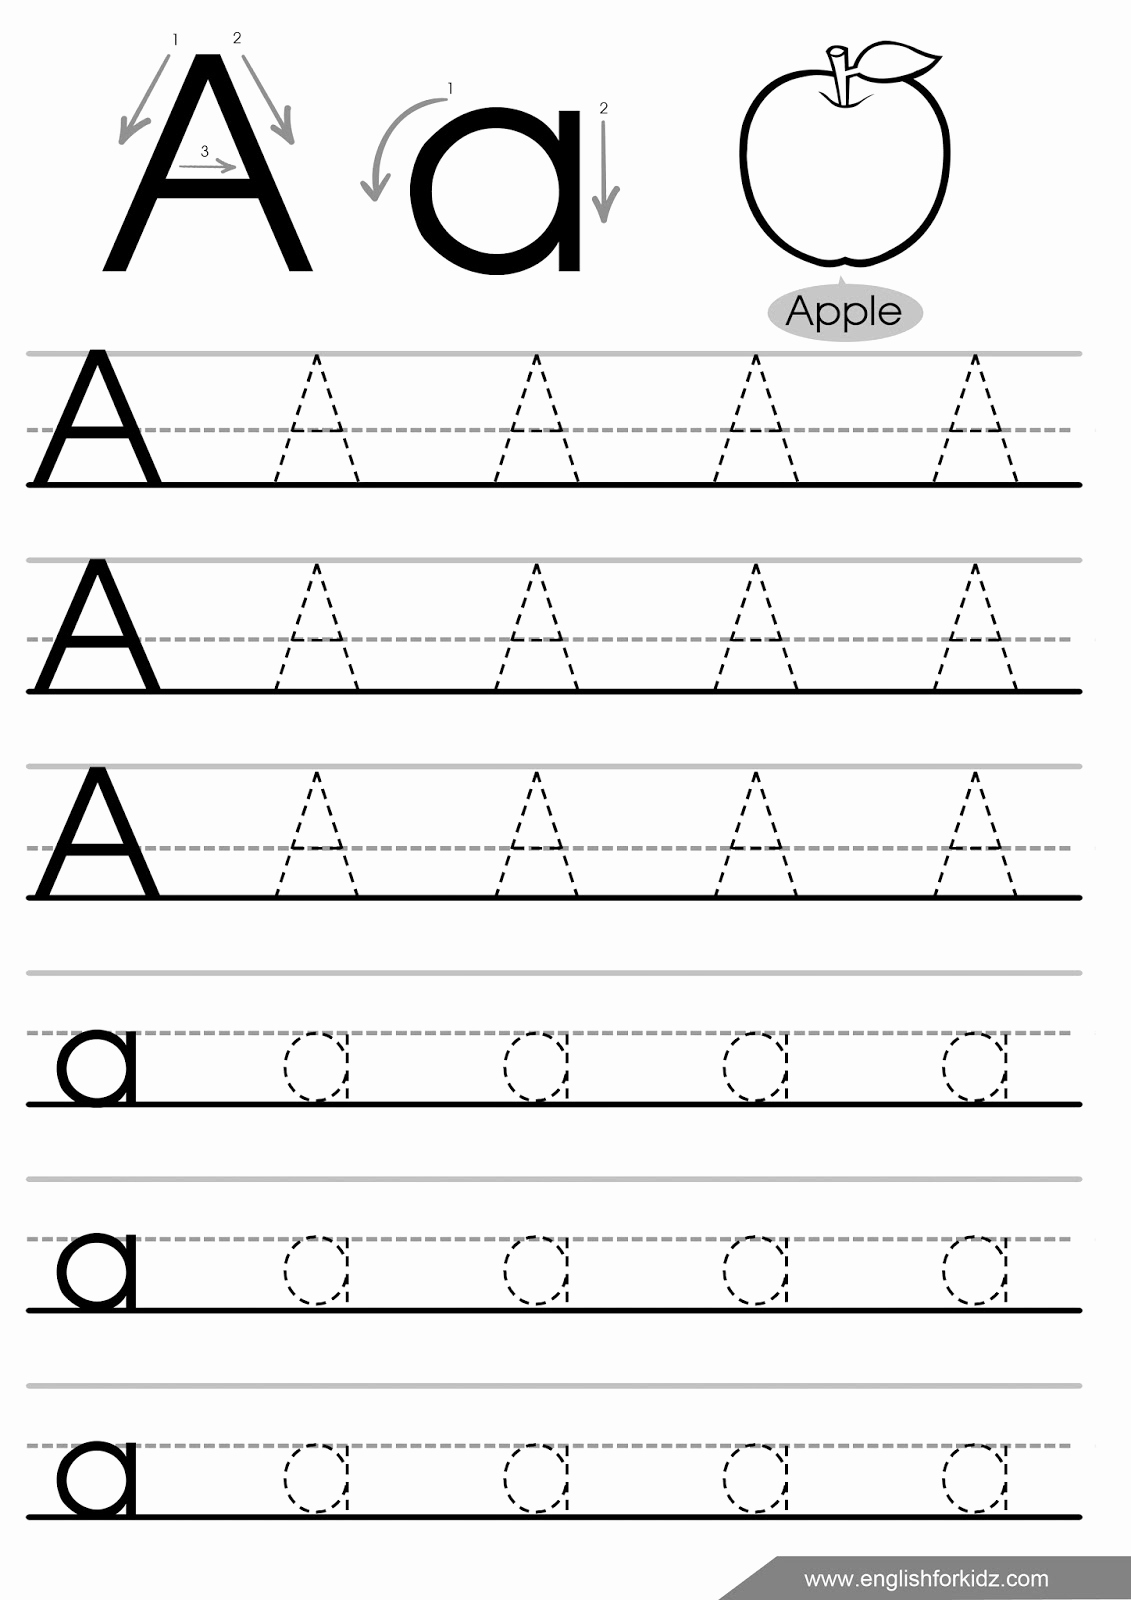 Alphabet Tracing Worksheets Pdf Best Of Tracing Alphabet Letters Pdf